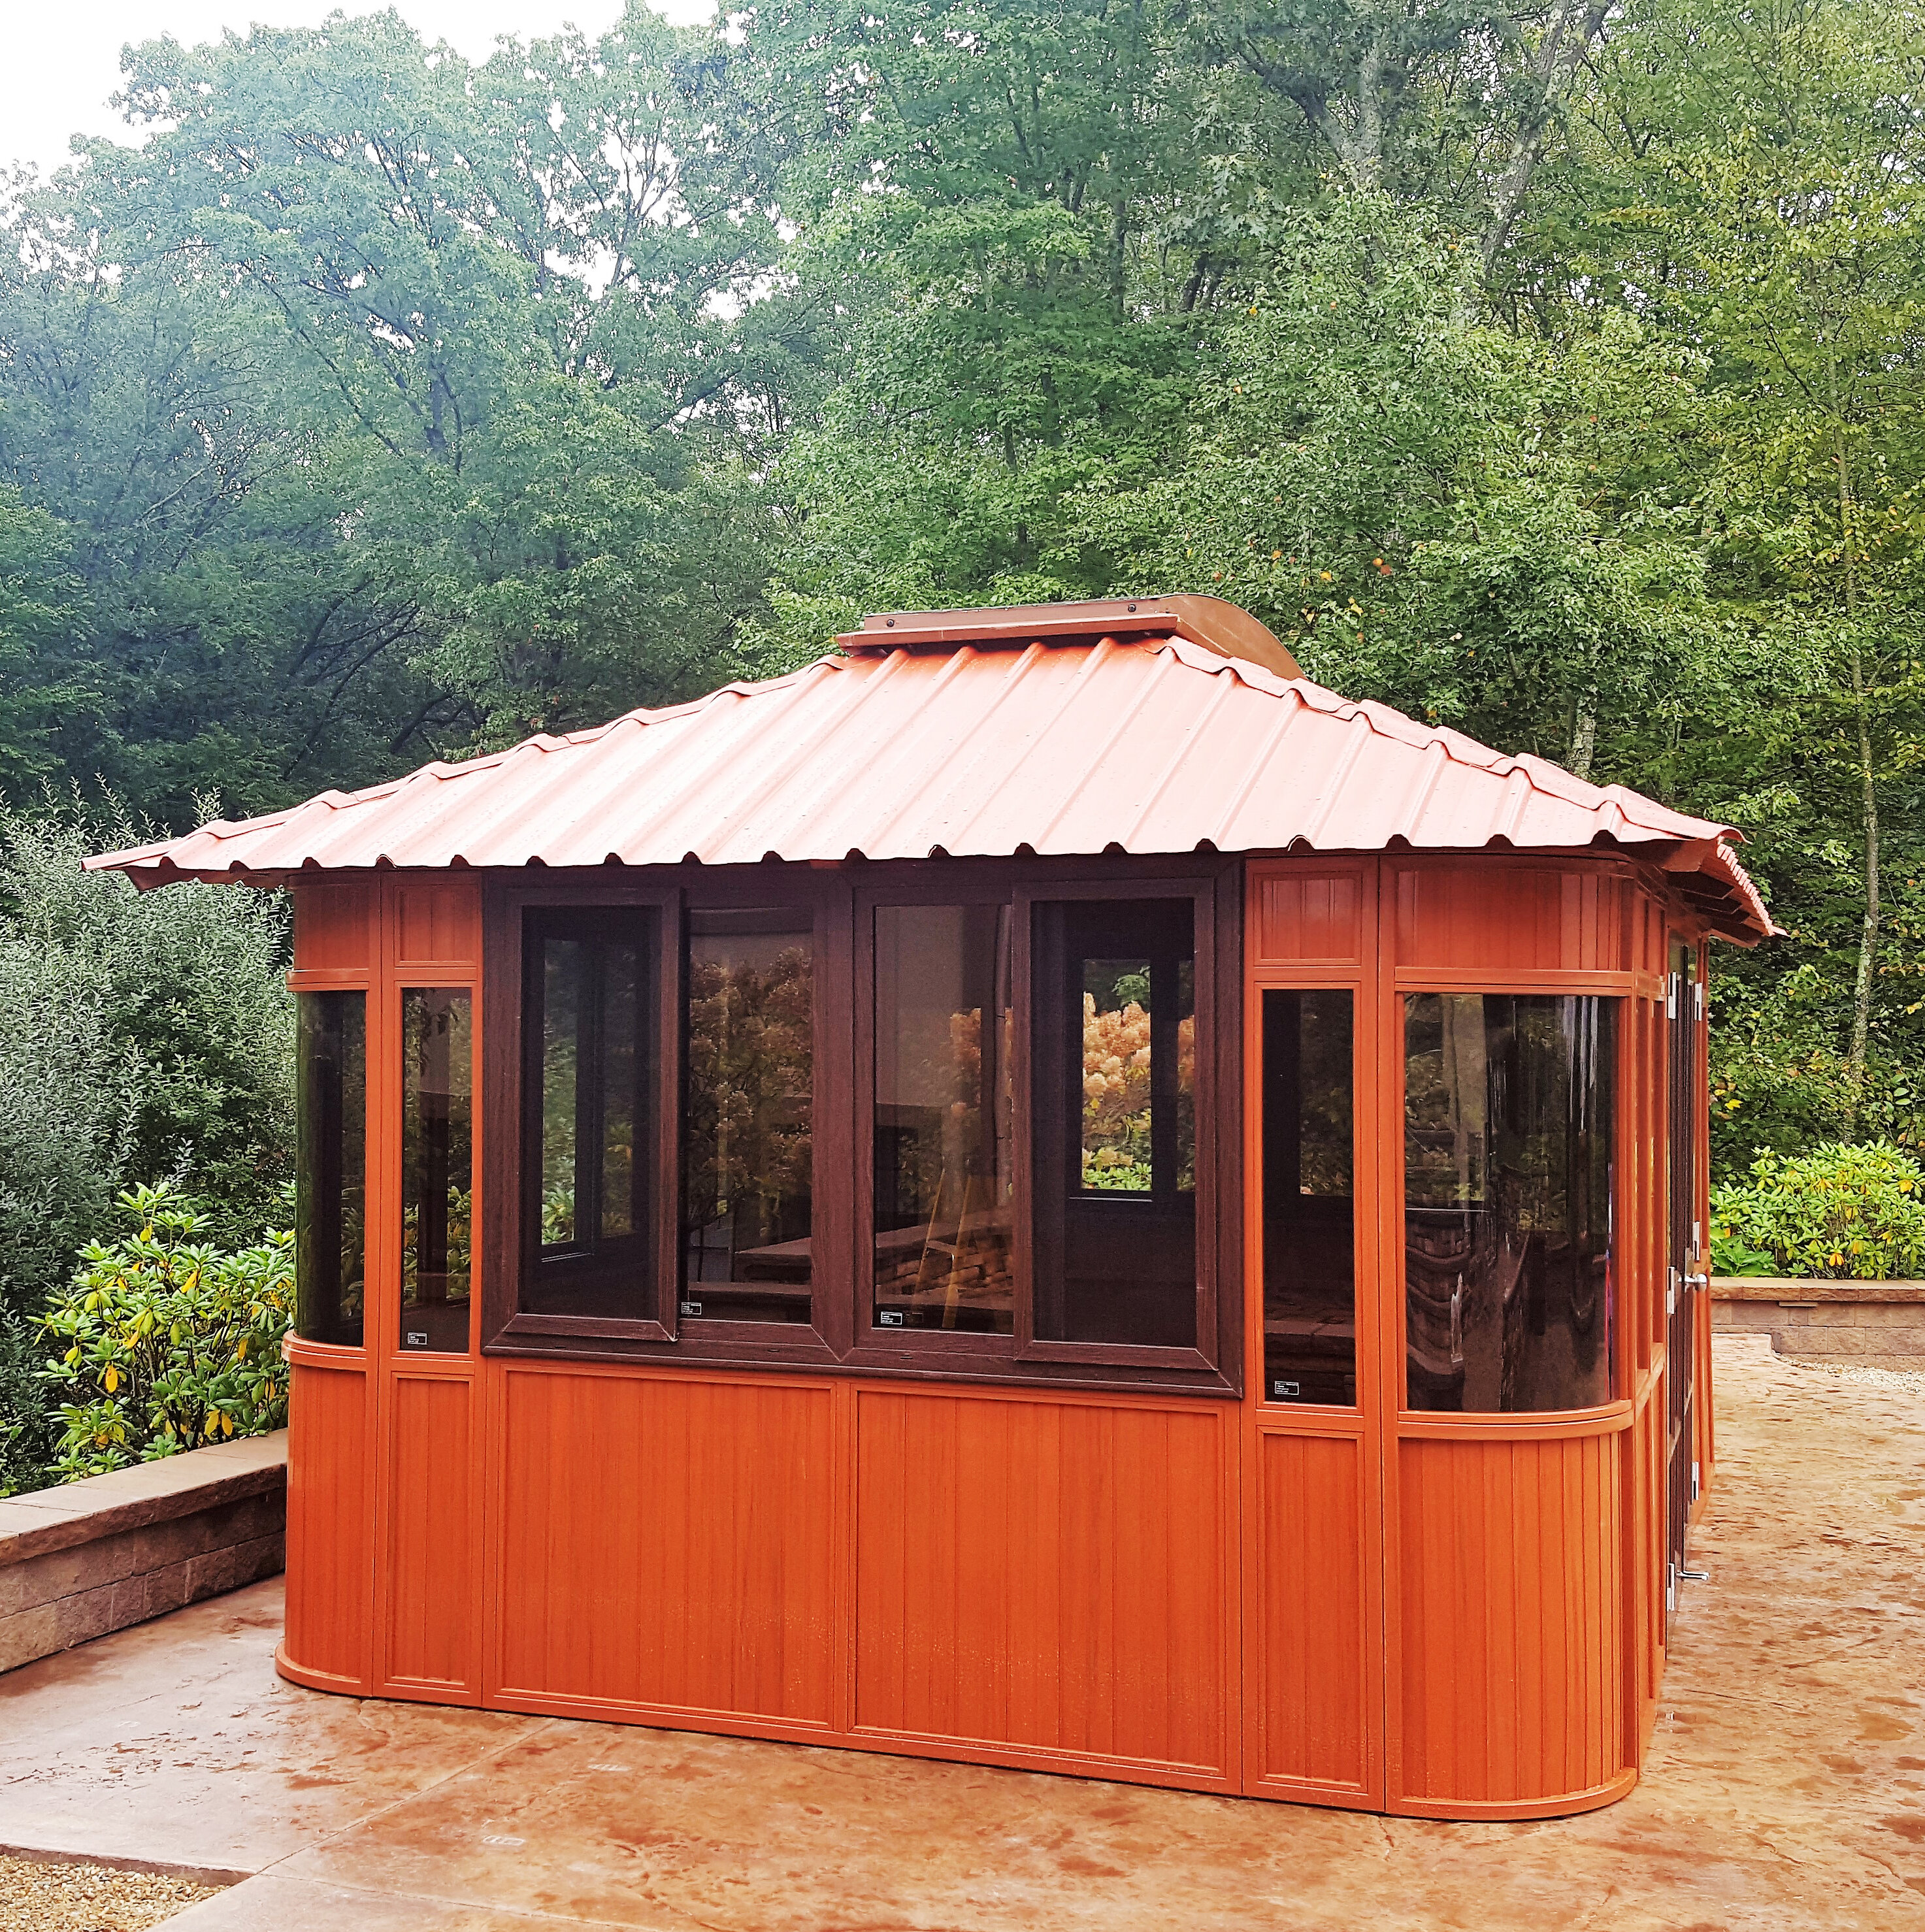 cover cedarwood chairs best decking deck with wood paver patio furniture our cedar projects decks kits images on